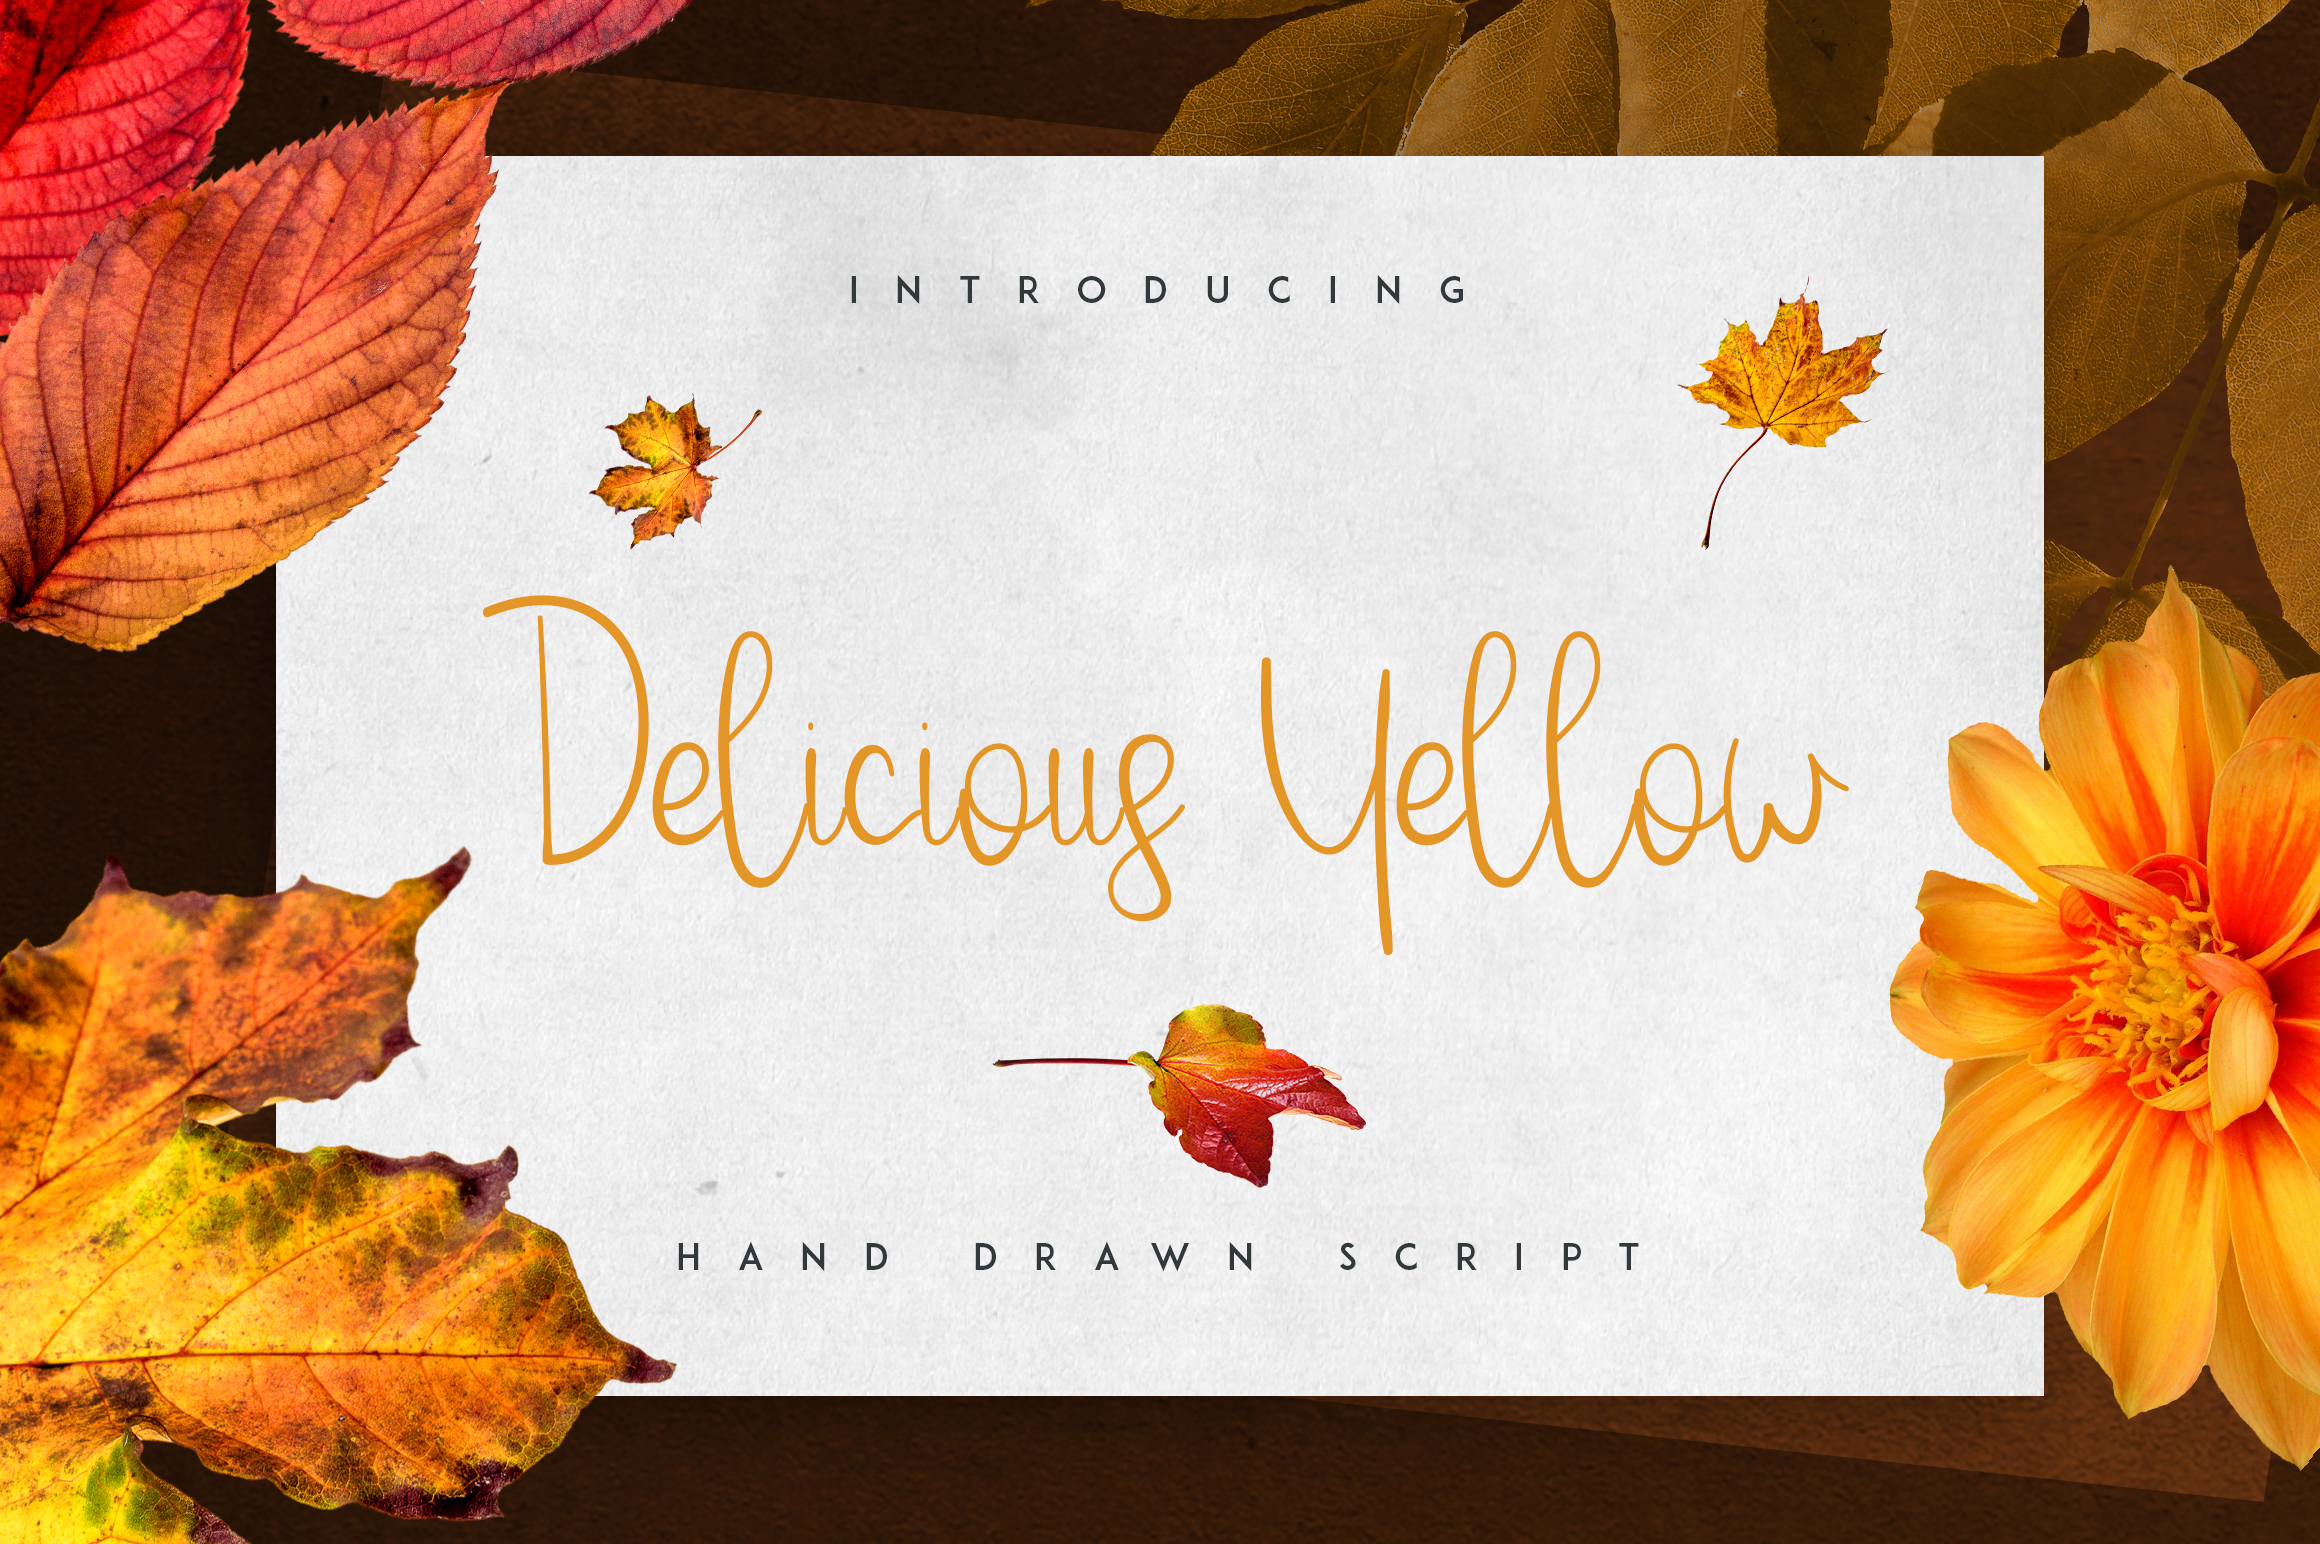 Delicious Yellow Script Font By vladfedotovv